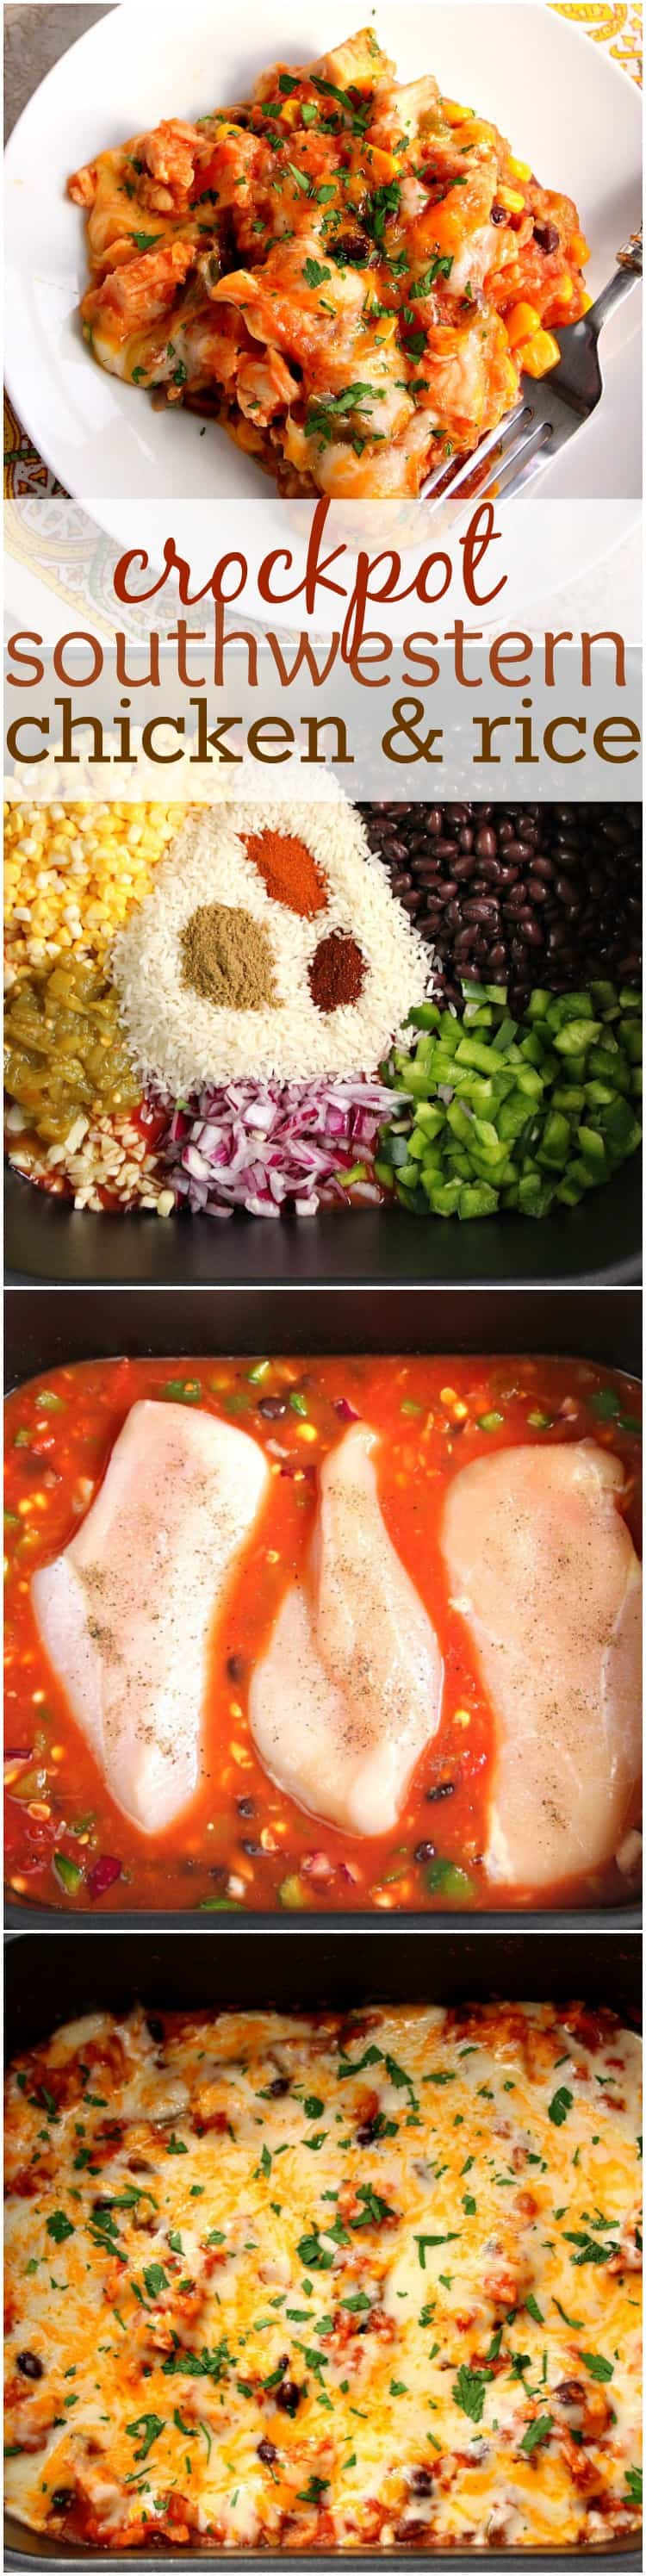 crockpot southwestern chicken and rice recipe Southwestern Crock Pot® Chicken and Rice Recipe